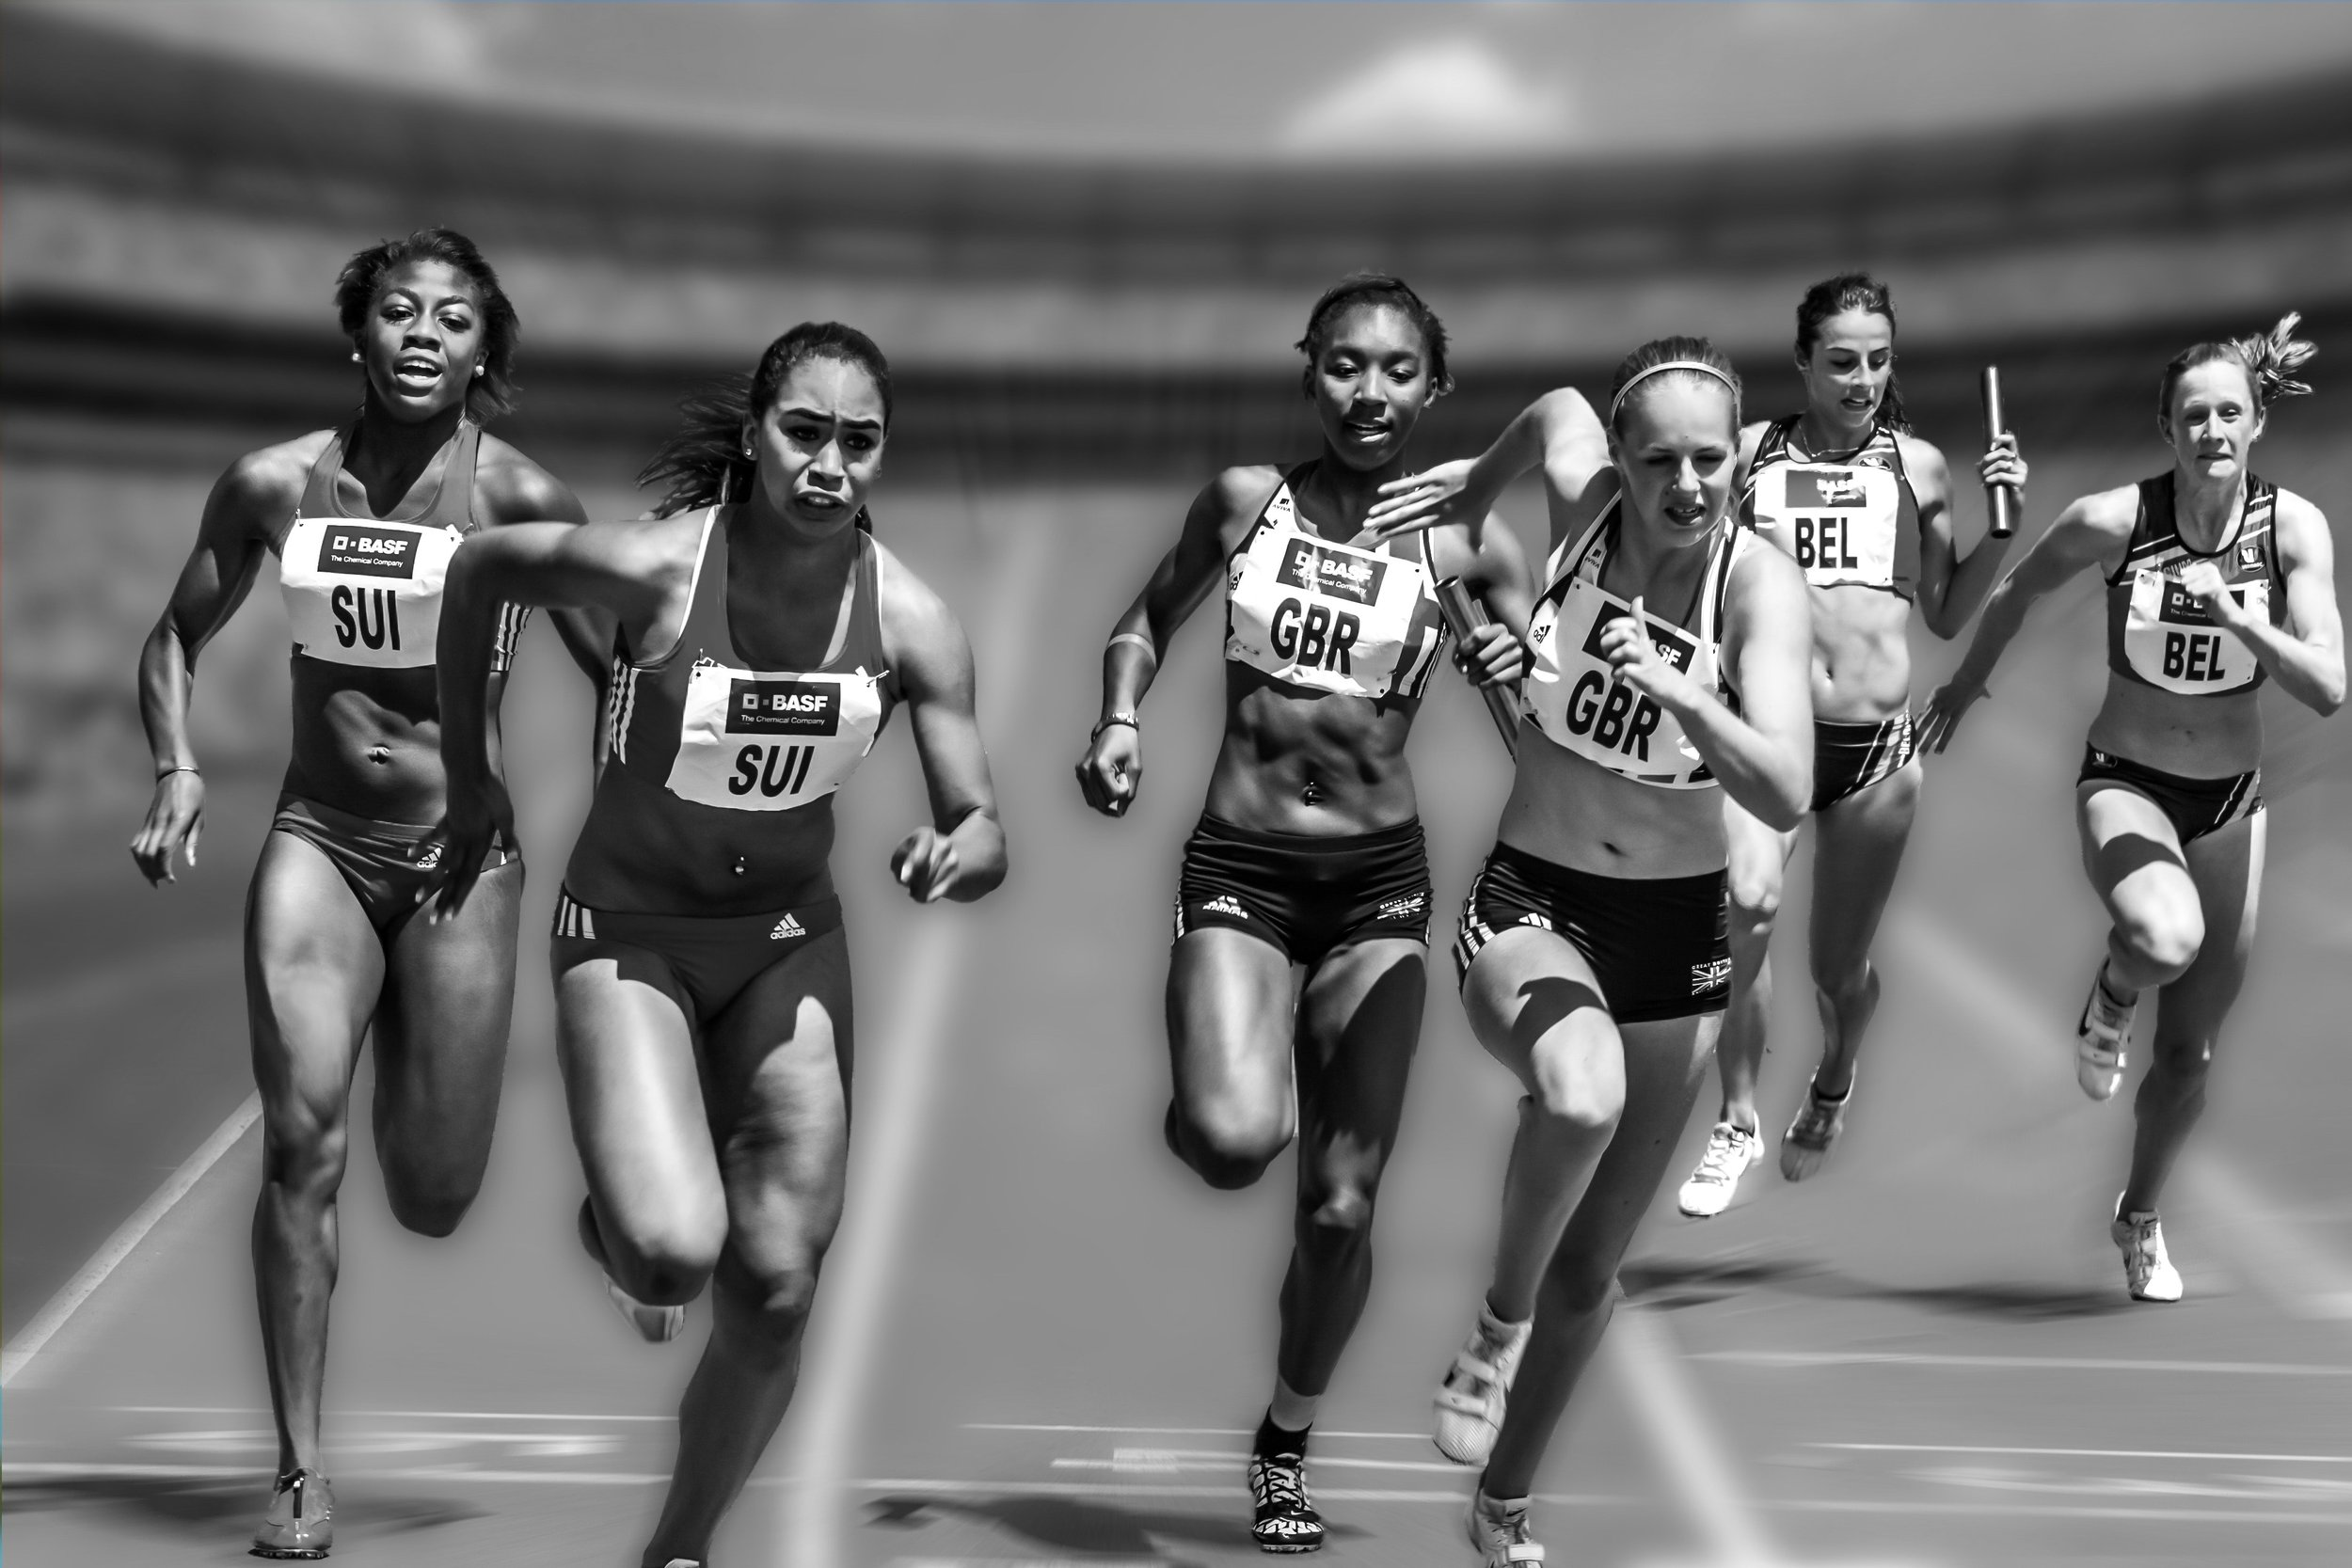 athletes-athletics-black-and-white-33703.jpg